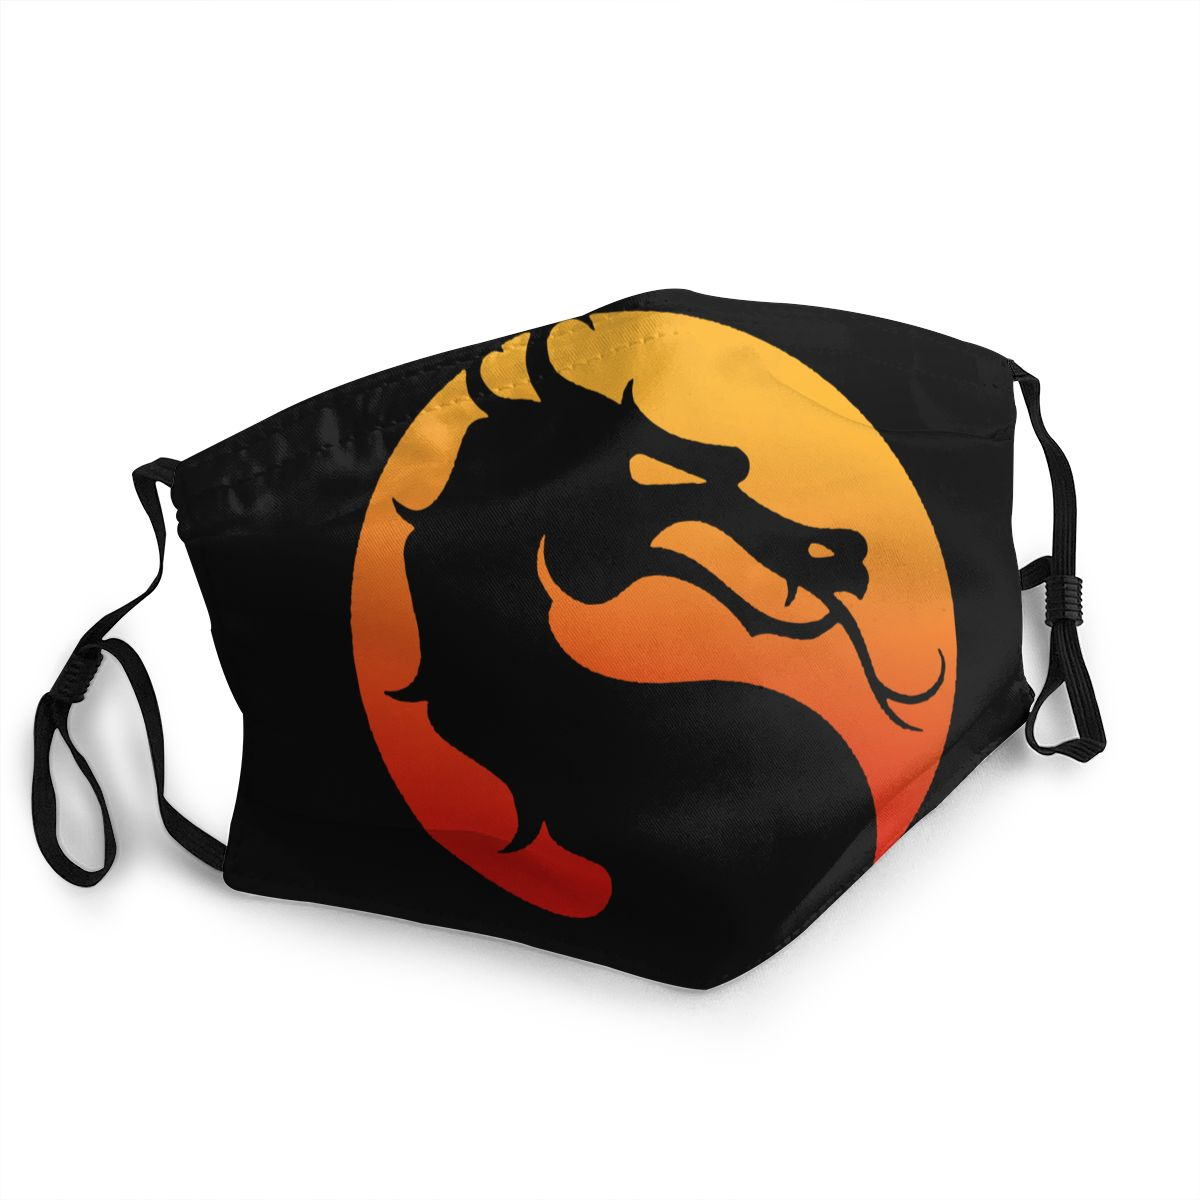 Mortal Kombat Mk11 Non-Disposable Face Mask Anti Bacterial Dust Mask Protection Cover Respirator Mouth Muffle